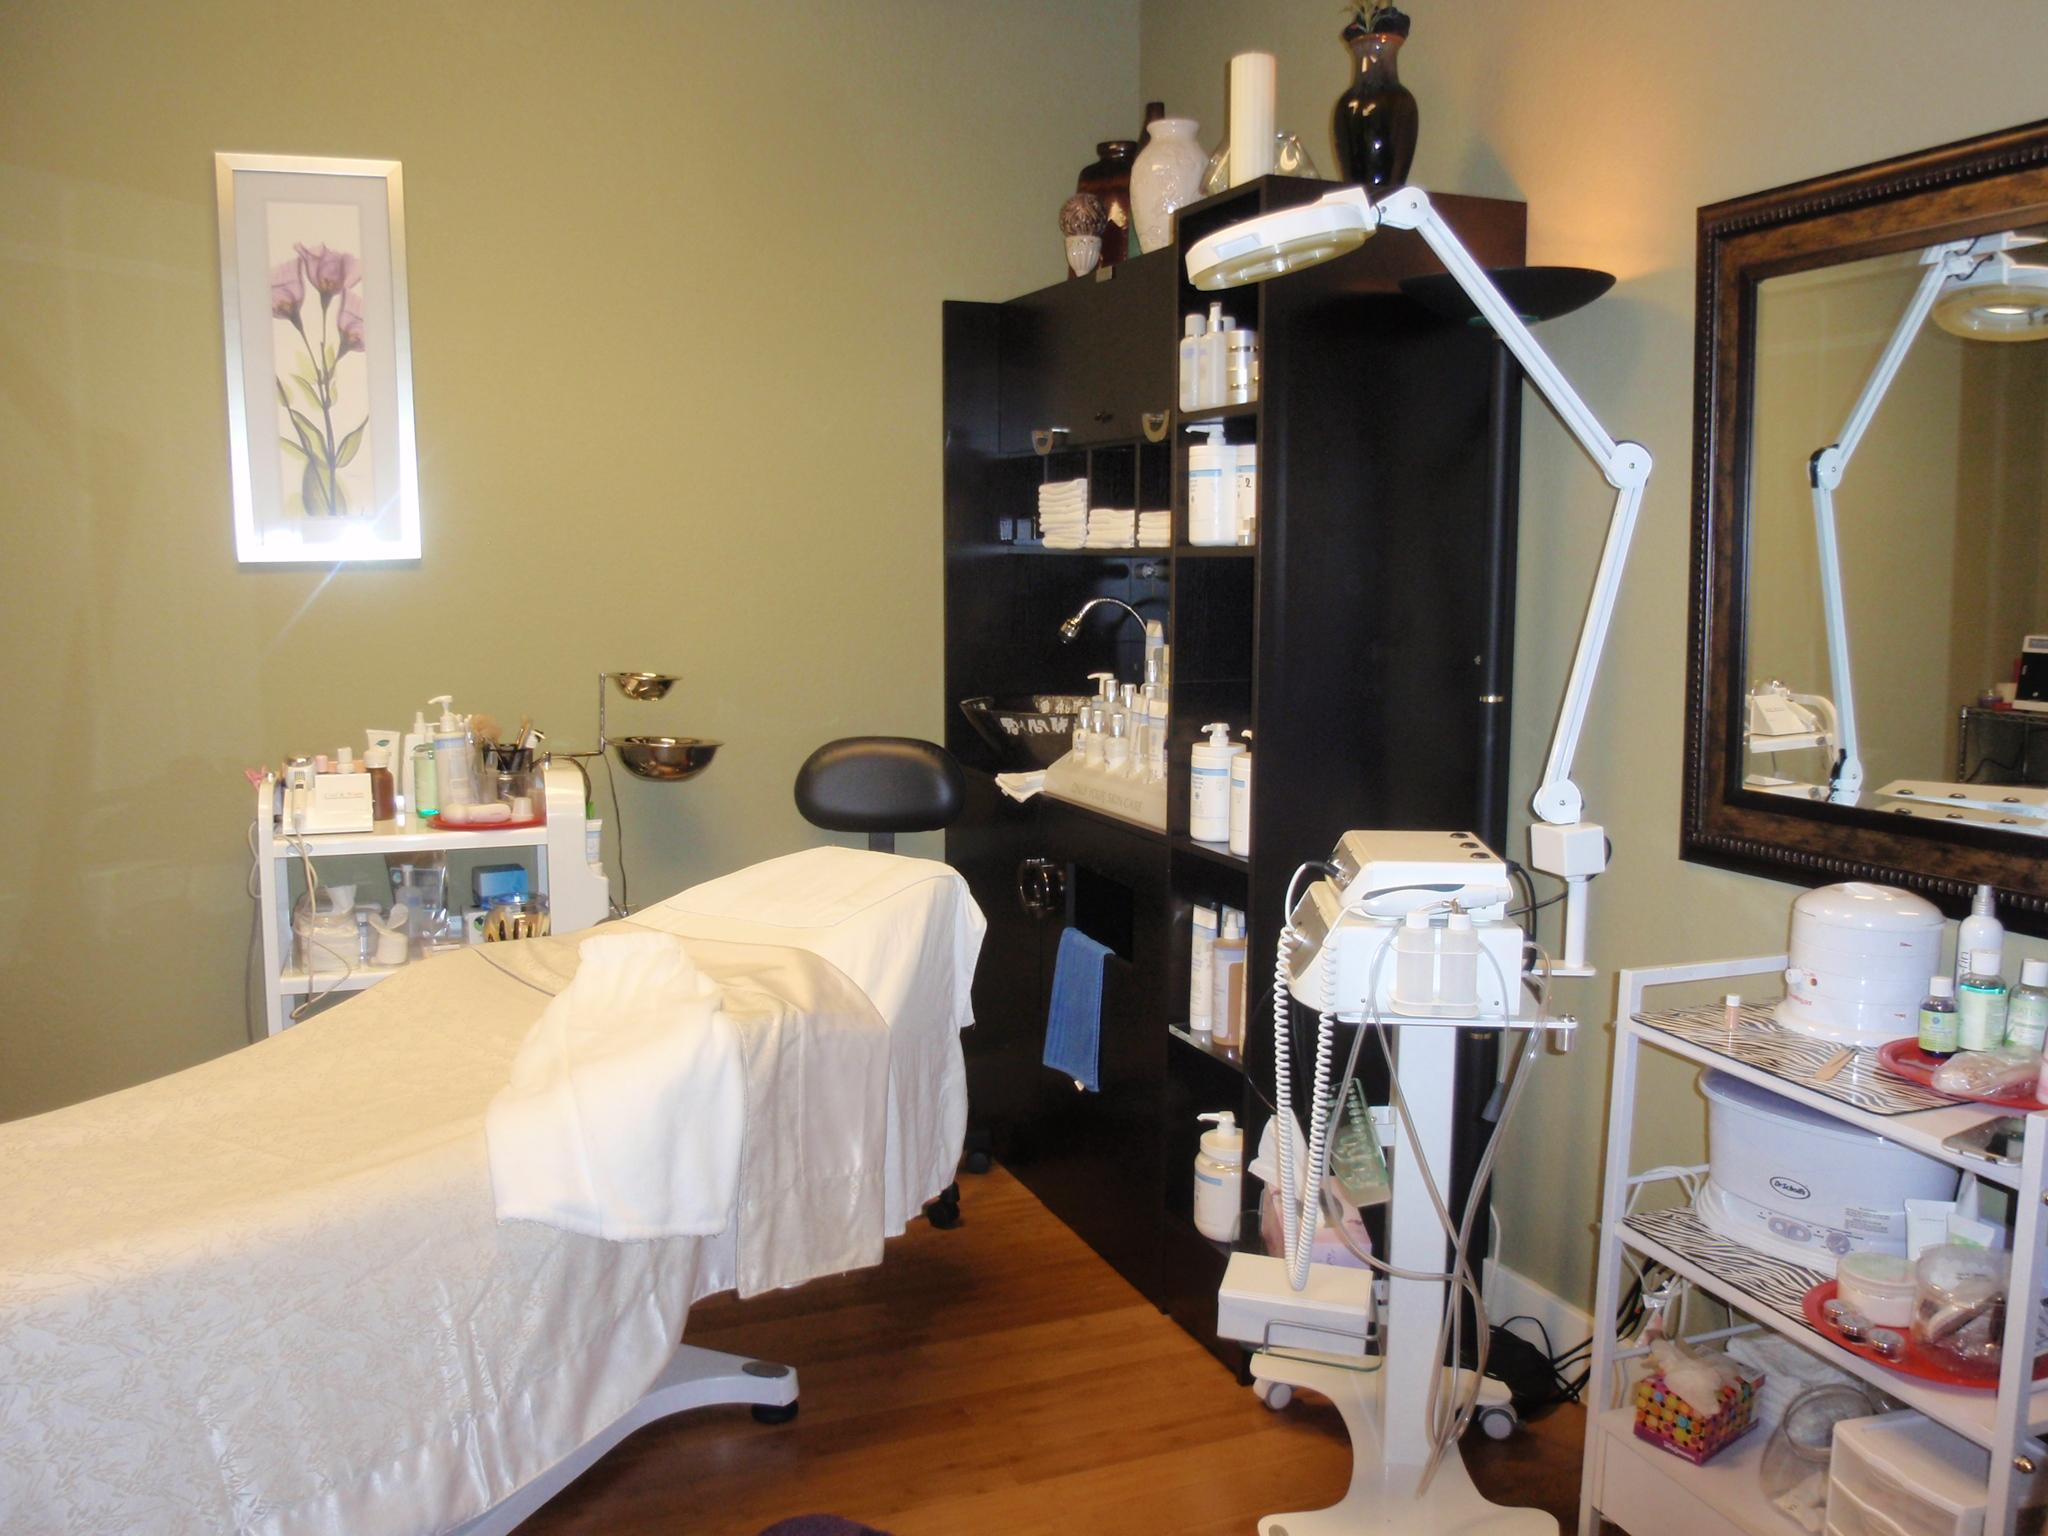 Pretty skin in bentonville medical arts in bentonville ar for Acropolis salon bentonville